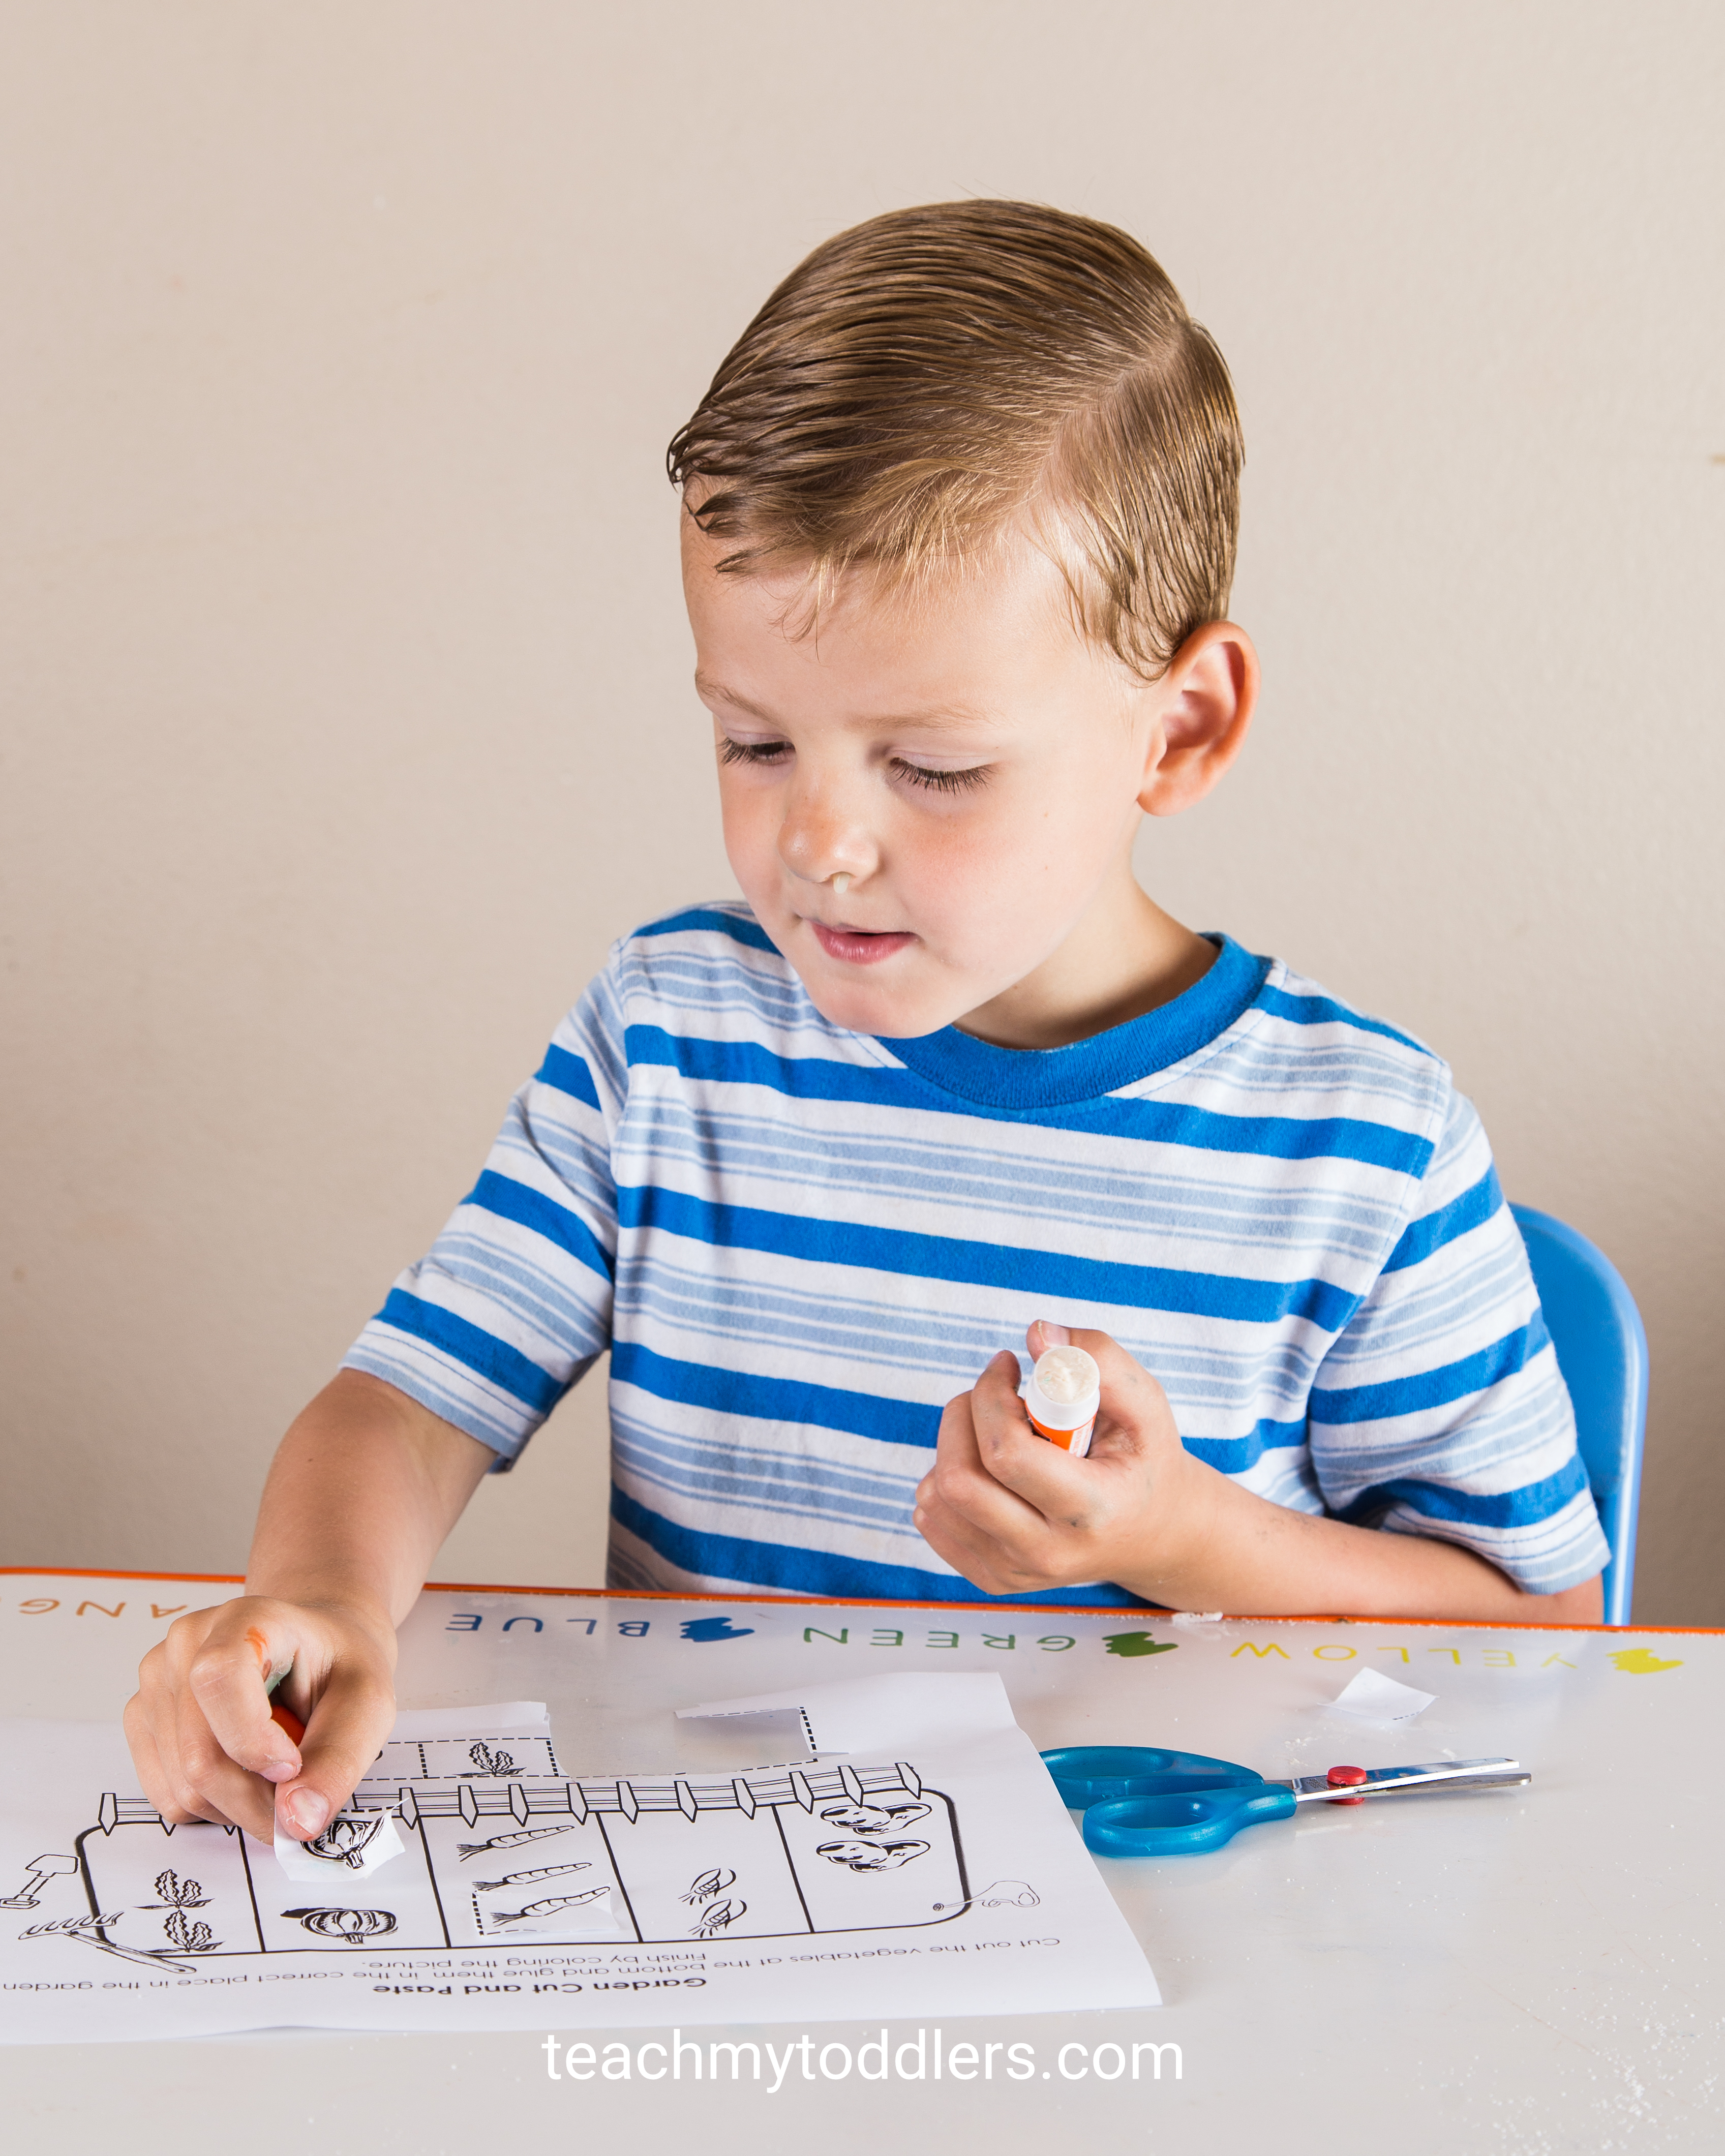 Find out how to use this garden activity to teach toddlers how to cut and paste